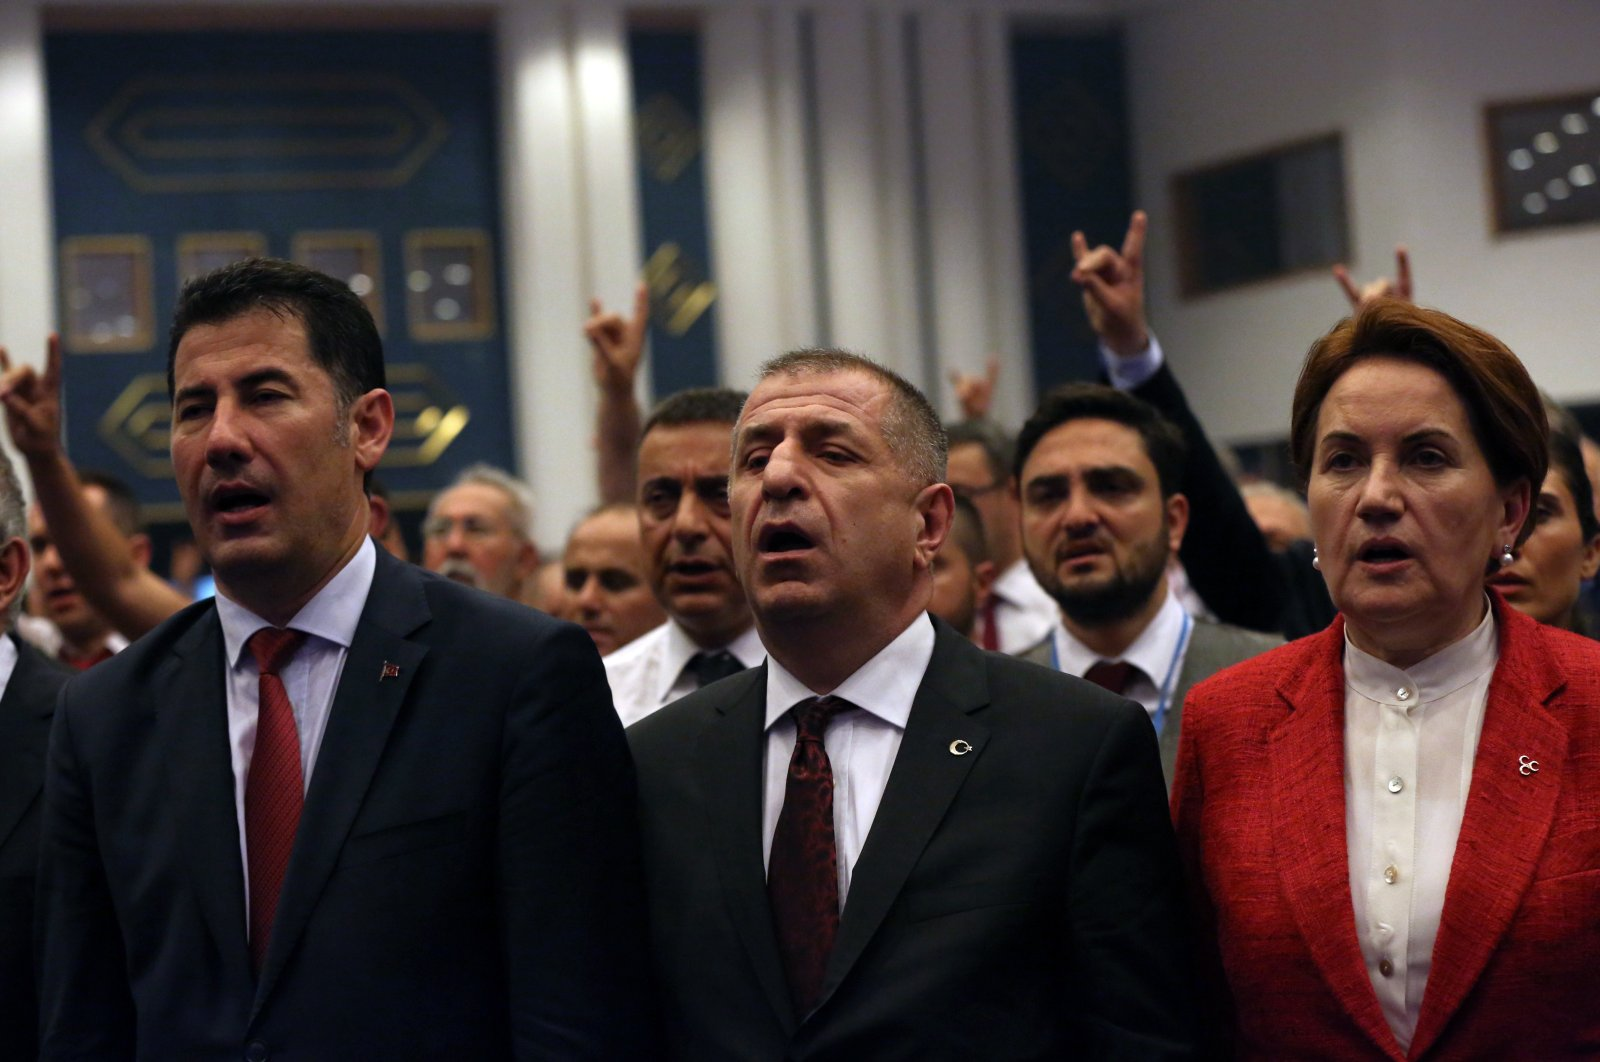 Candidates for the leadership of the Nationalist Movement Party (MHP), Ümit Özdağ (C), Meral Aksener (R), who is now IP chairperson, and Sinan Ogan sing the national anthem during an MHP congress outside Ankara, Turkey, June 19, 2016. (AP Photo)